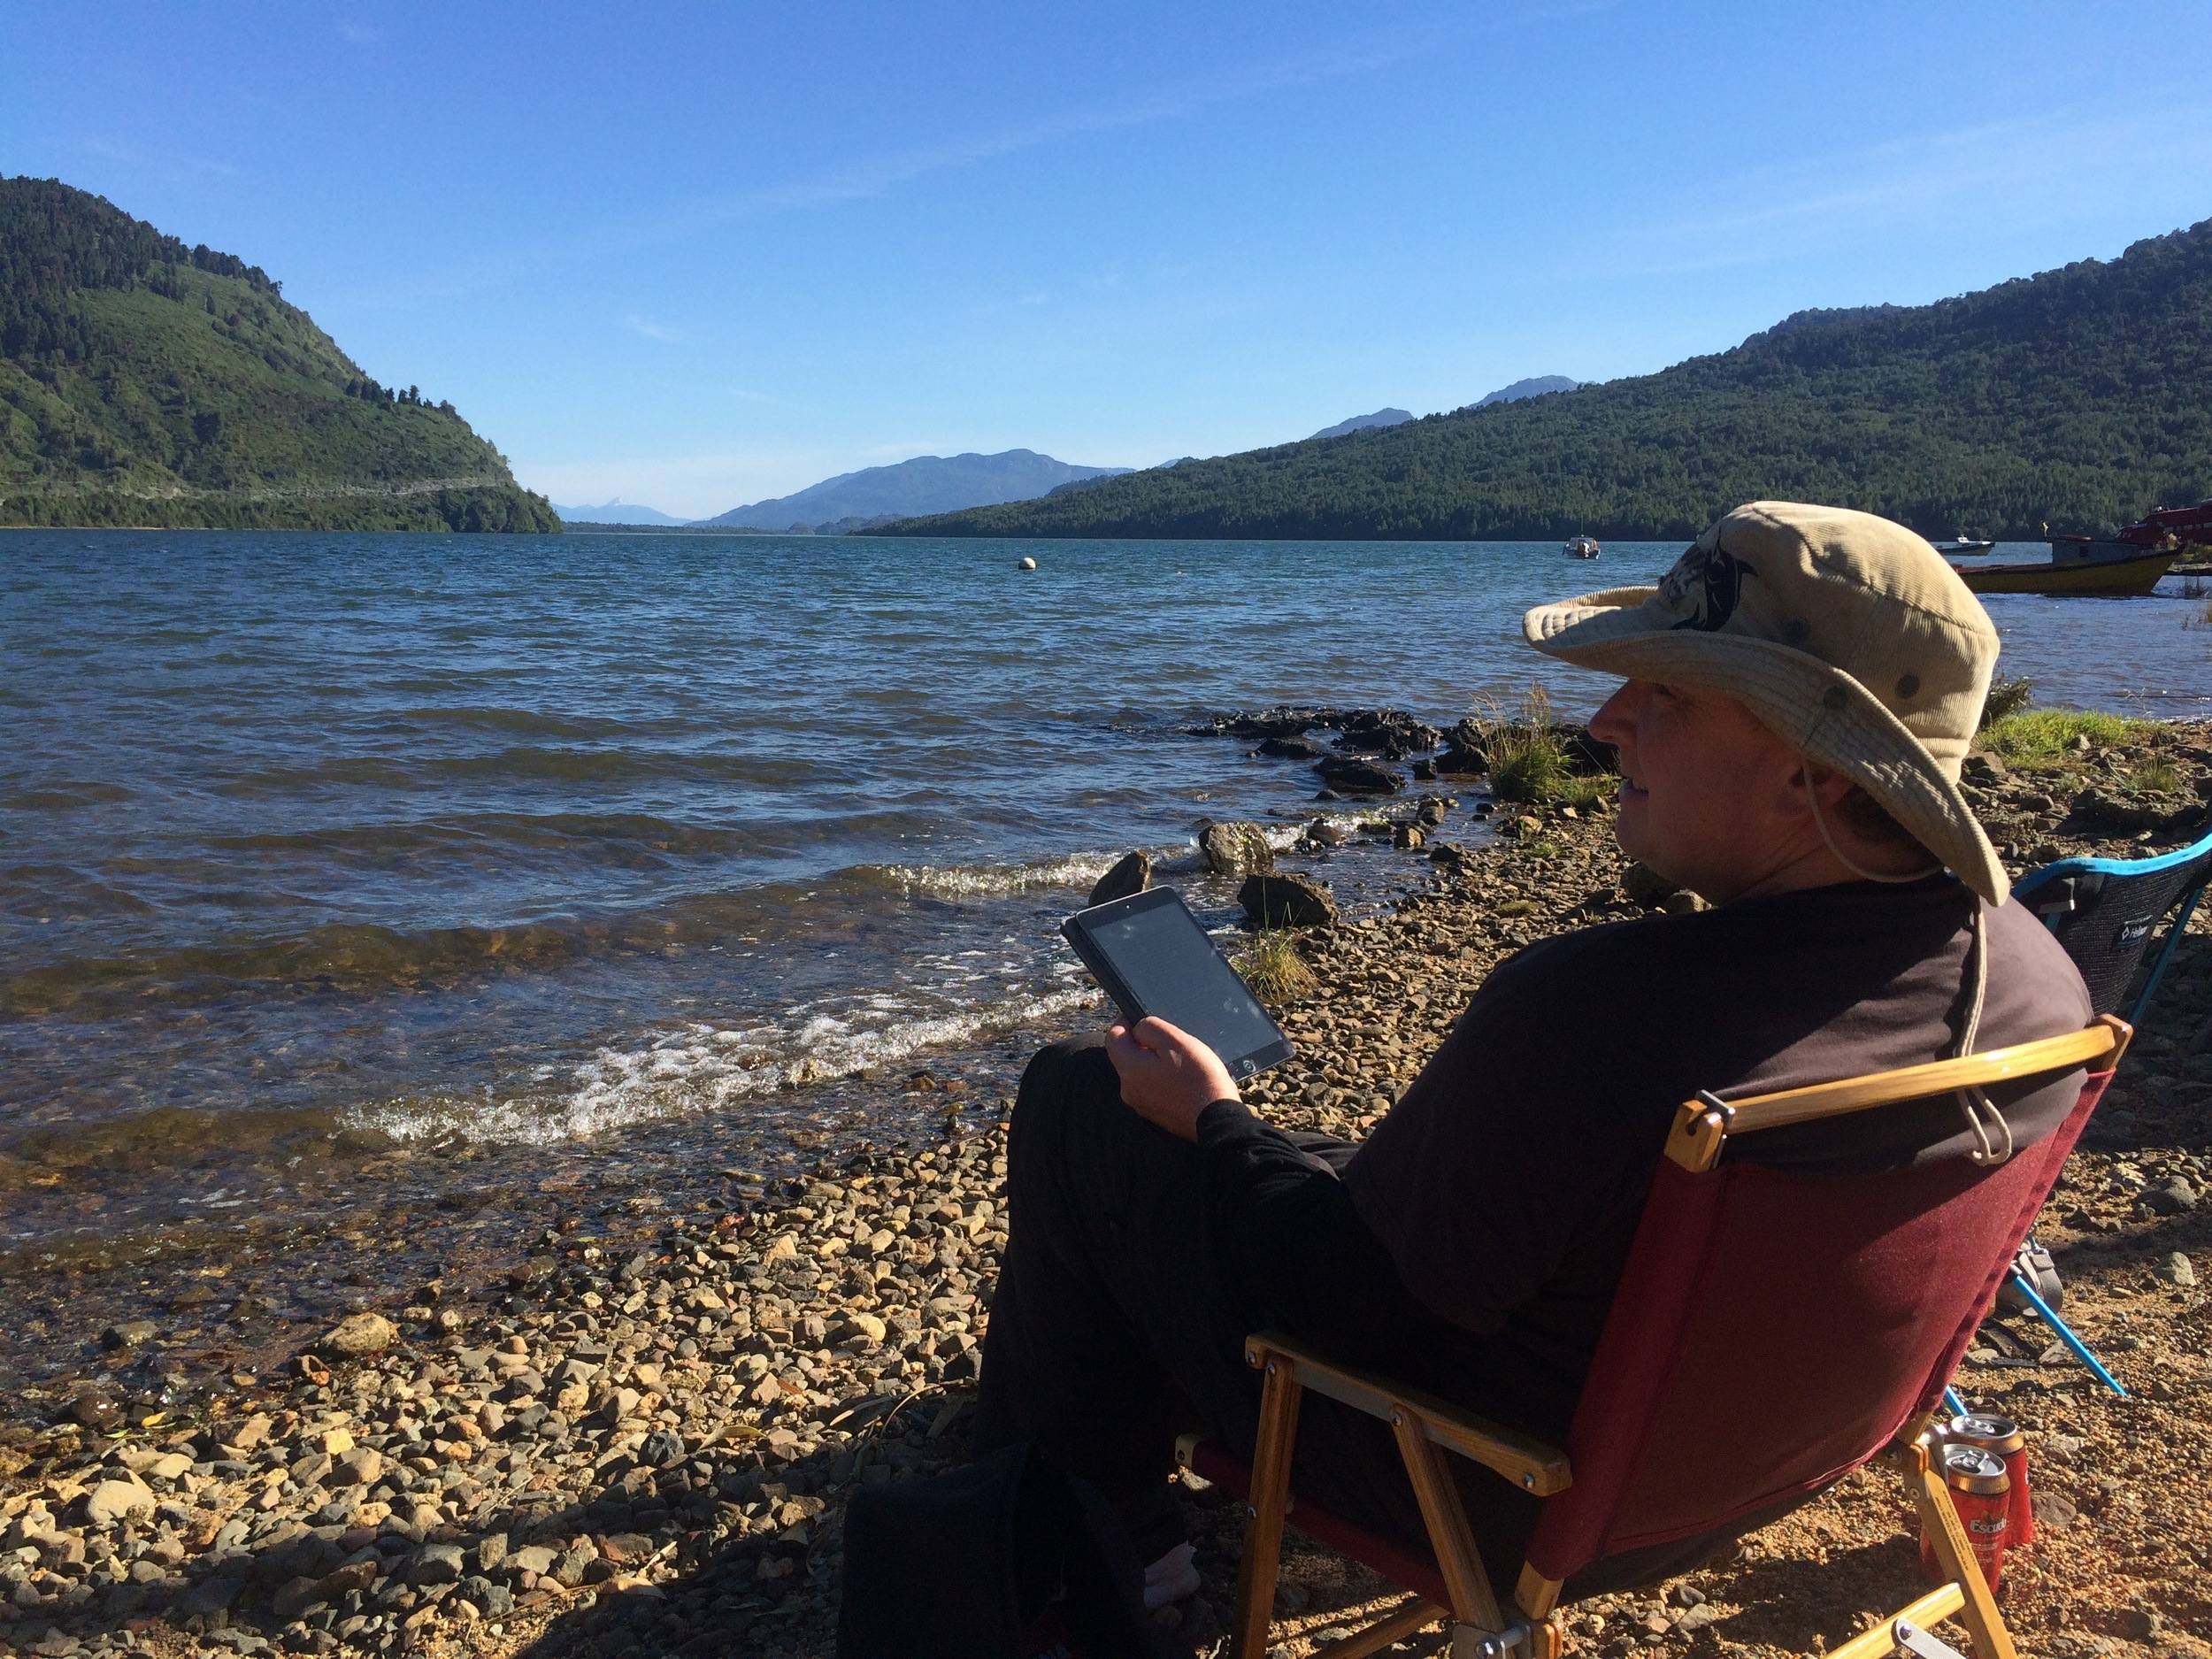 Relaxing after a hard day off-road. Puyuhuapi, Chile on the Carretera Austral.